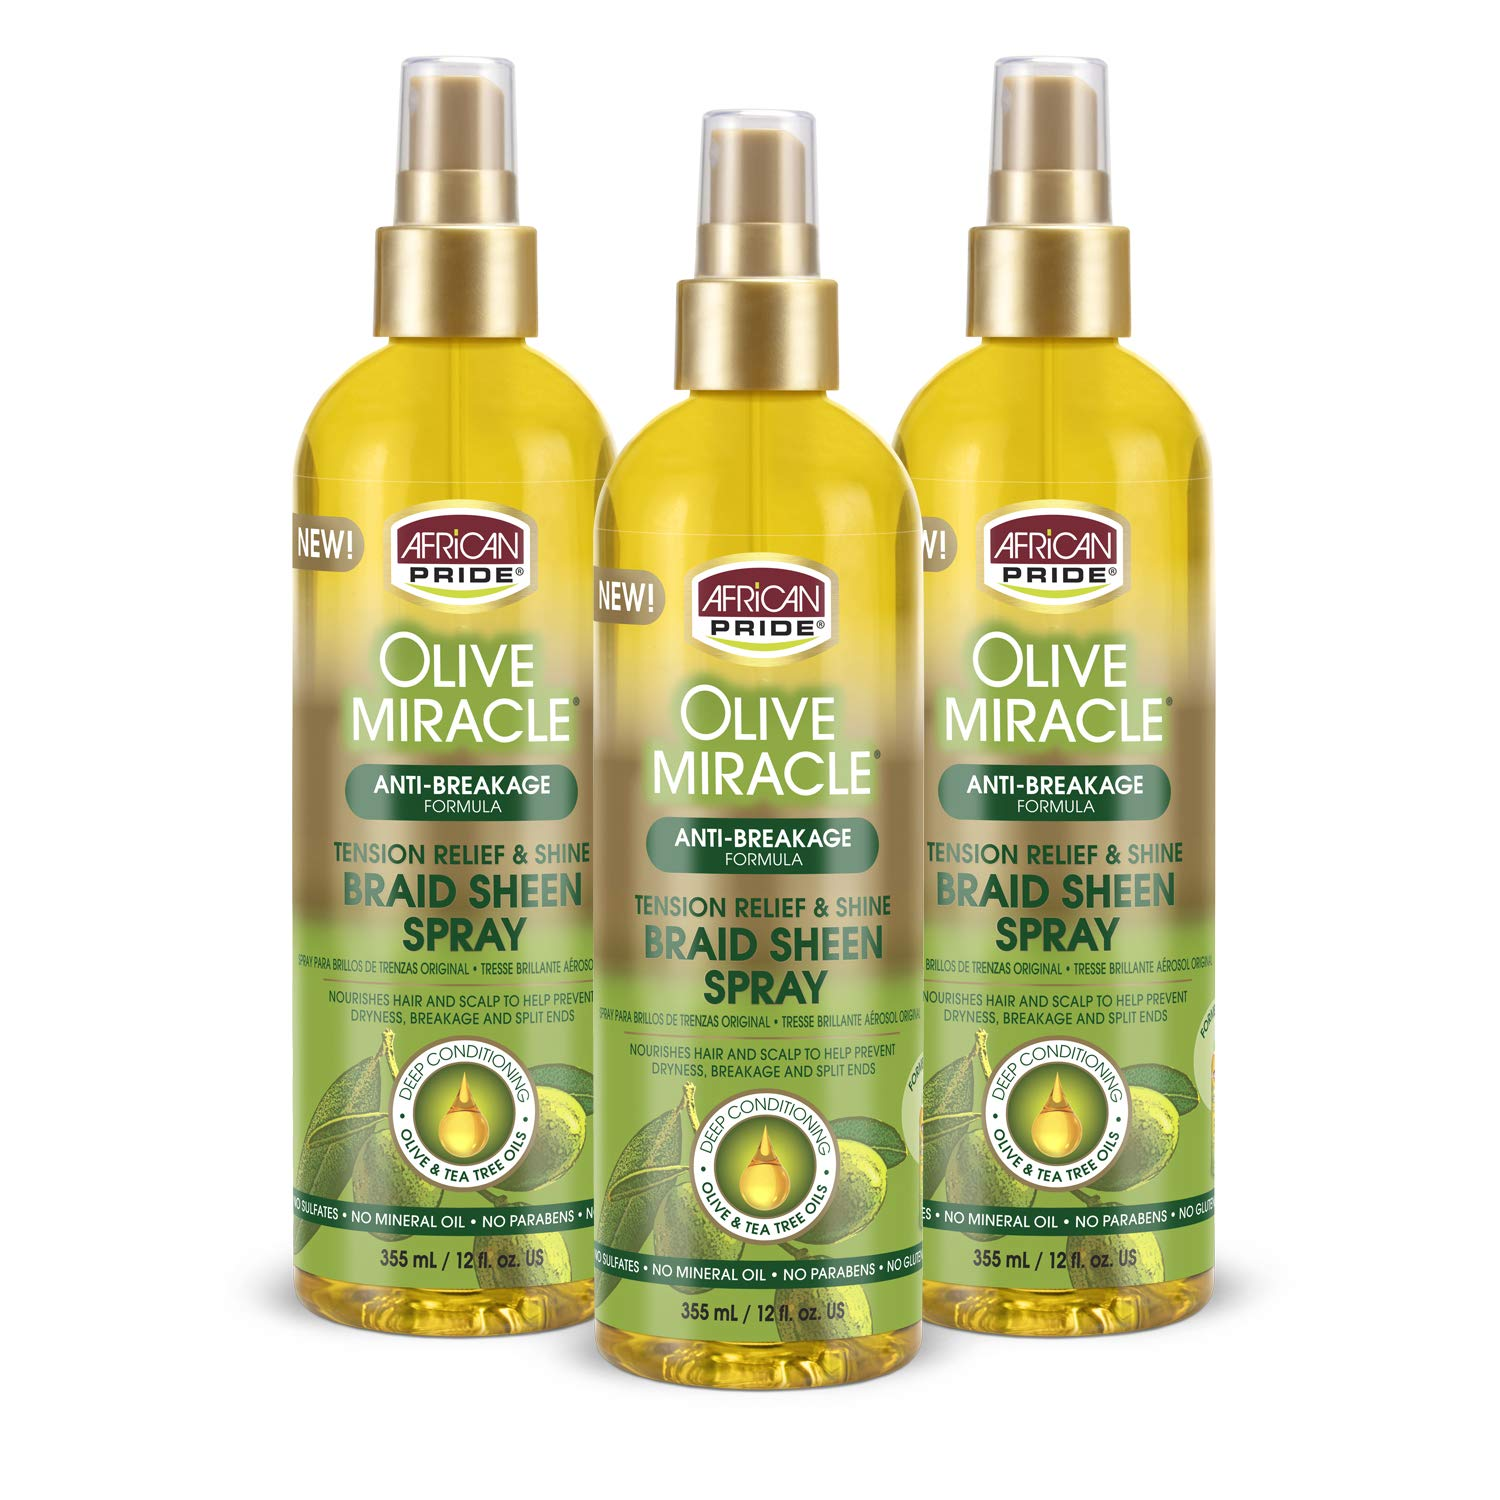 African Pride Olive Miracle Braid Sheen Spray (3 Pack) with tea tree oil and olive oil to protect and moisturize scalp and hair.12oz.